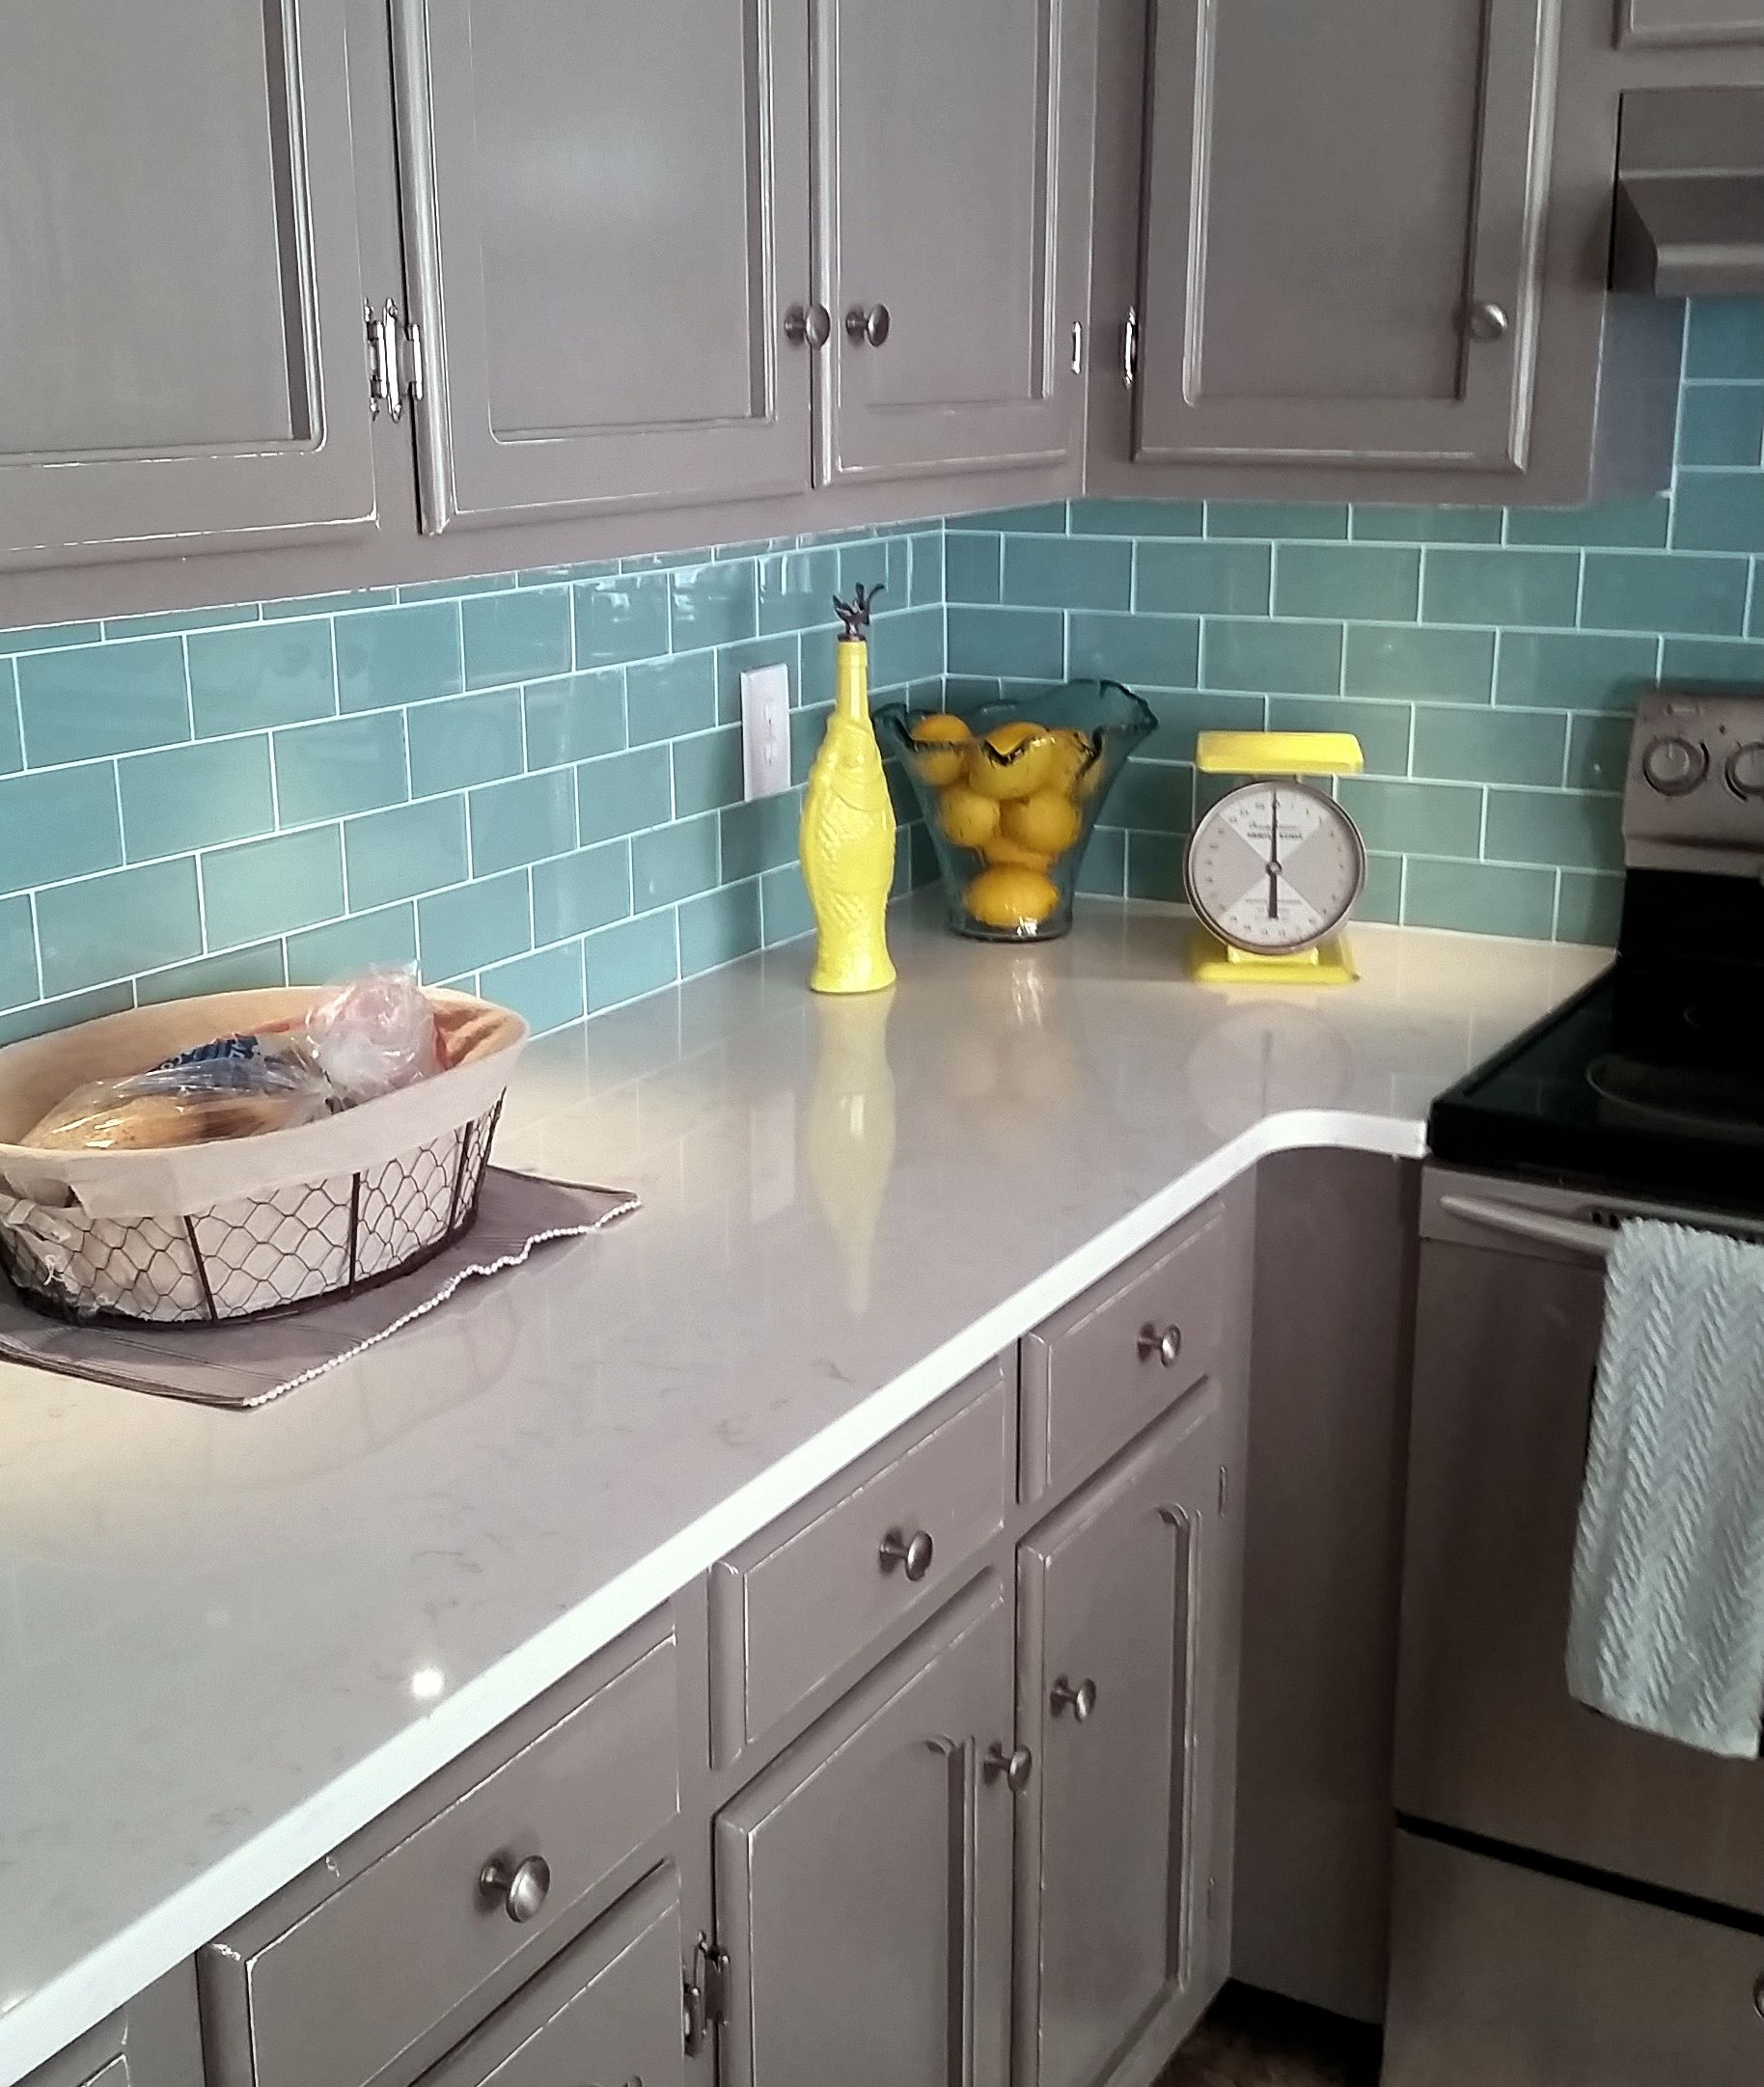 - Sage Green Glass Subway Tile Design De Interior De Cozinha